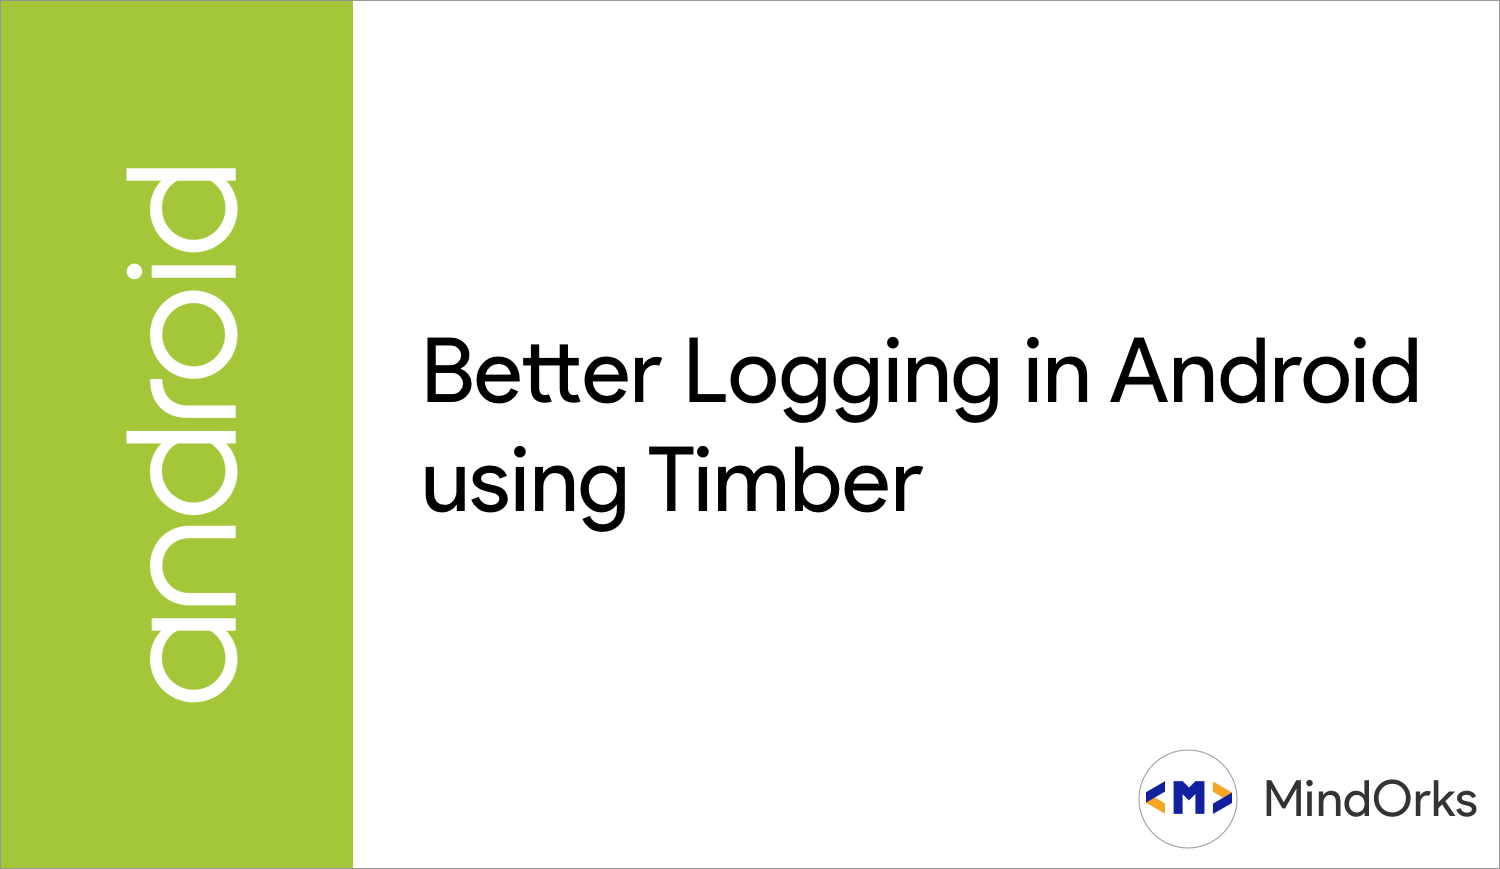 Better Logging in Android Using Timber